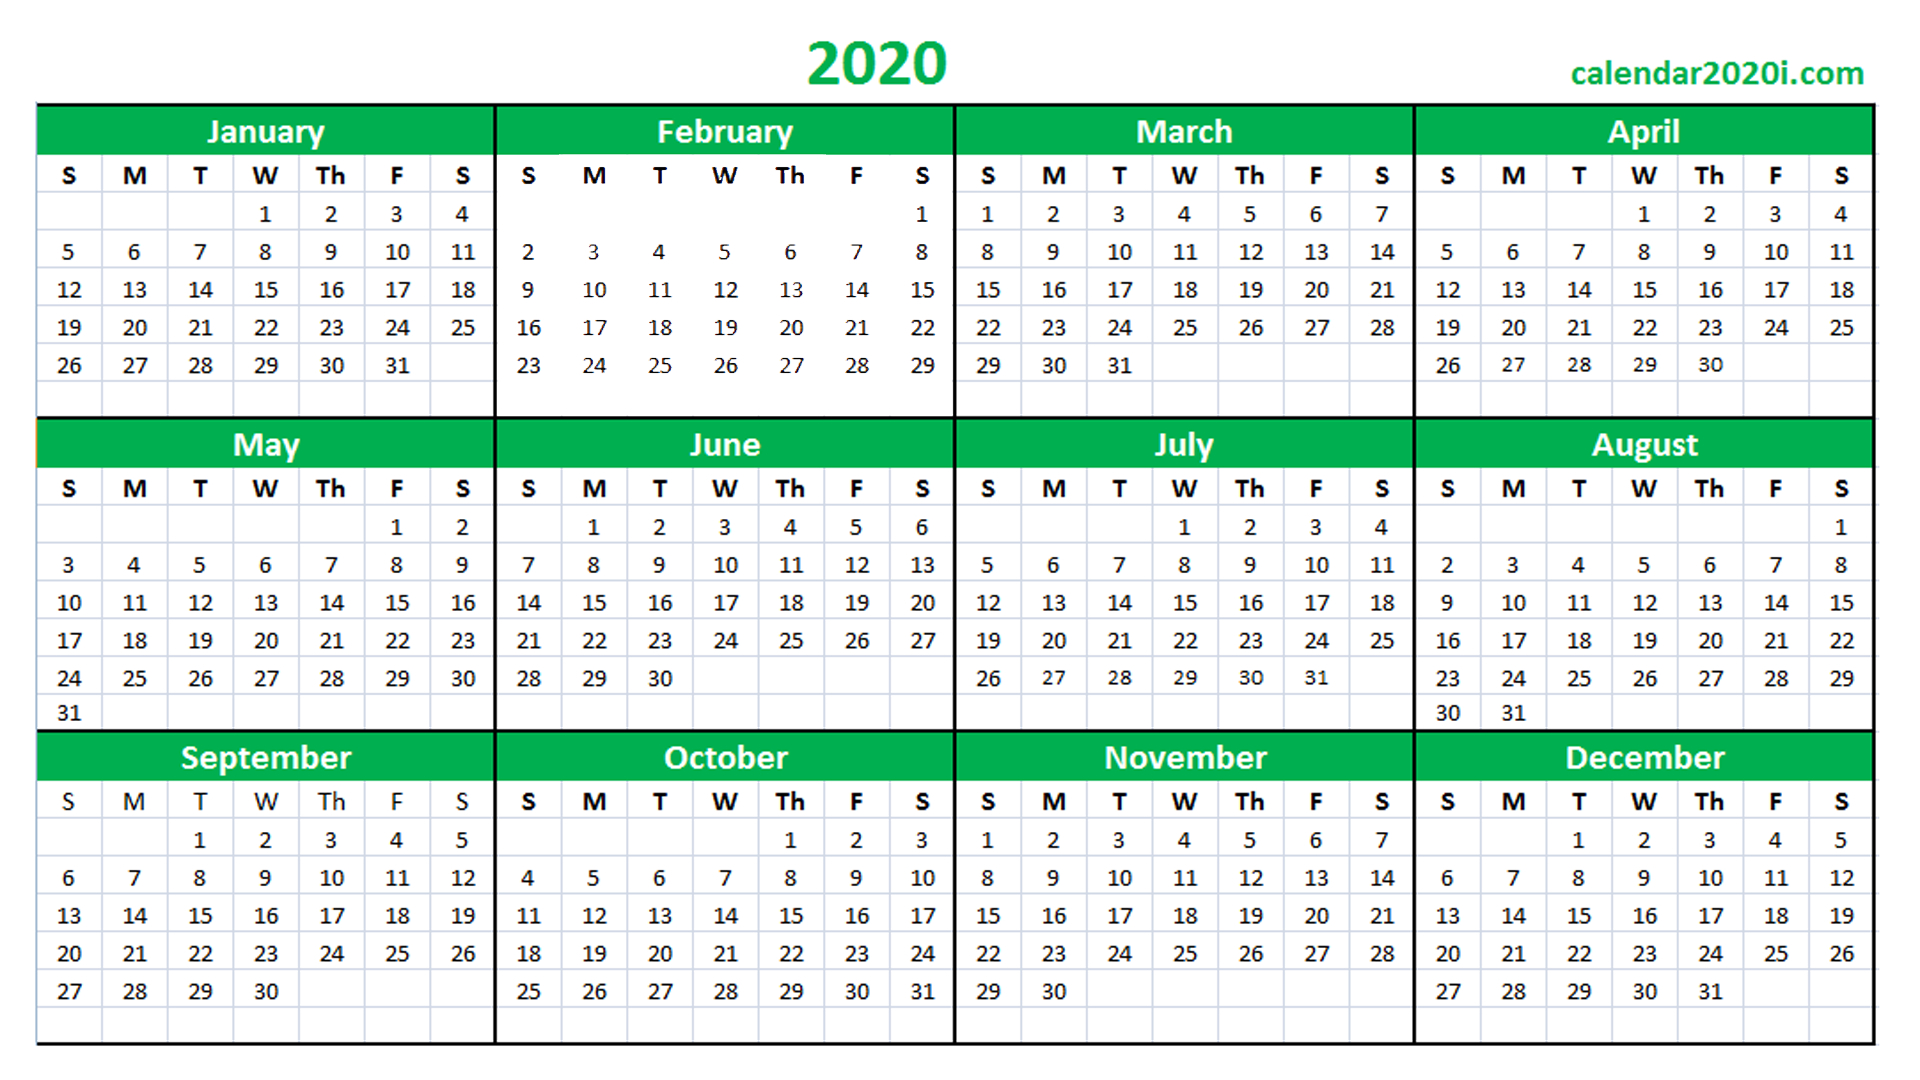 2020 Calendar Printable Template Holidays, Word, Excel Calendars I Can Edit